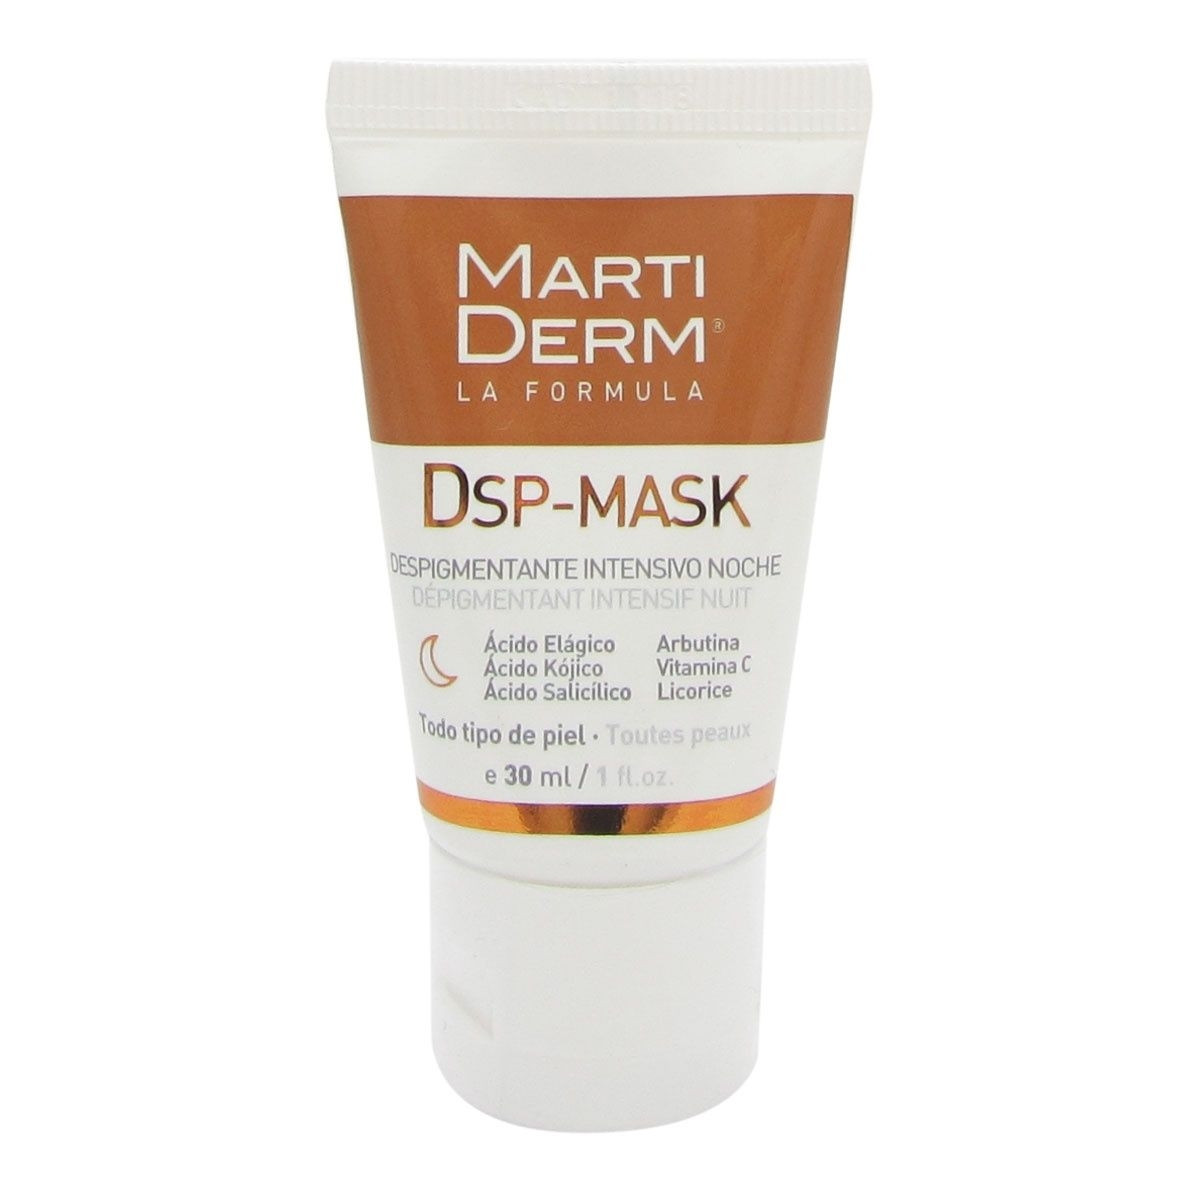 FIT MARTIDERM DSP-MASK 30ML